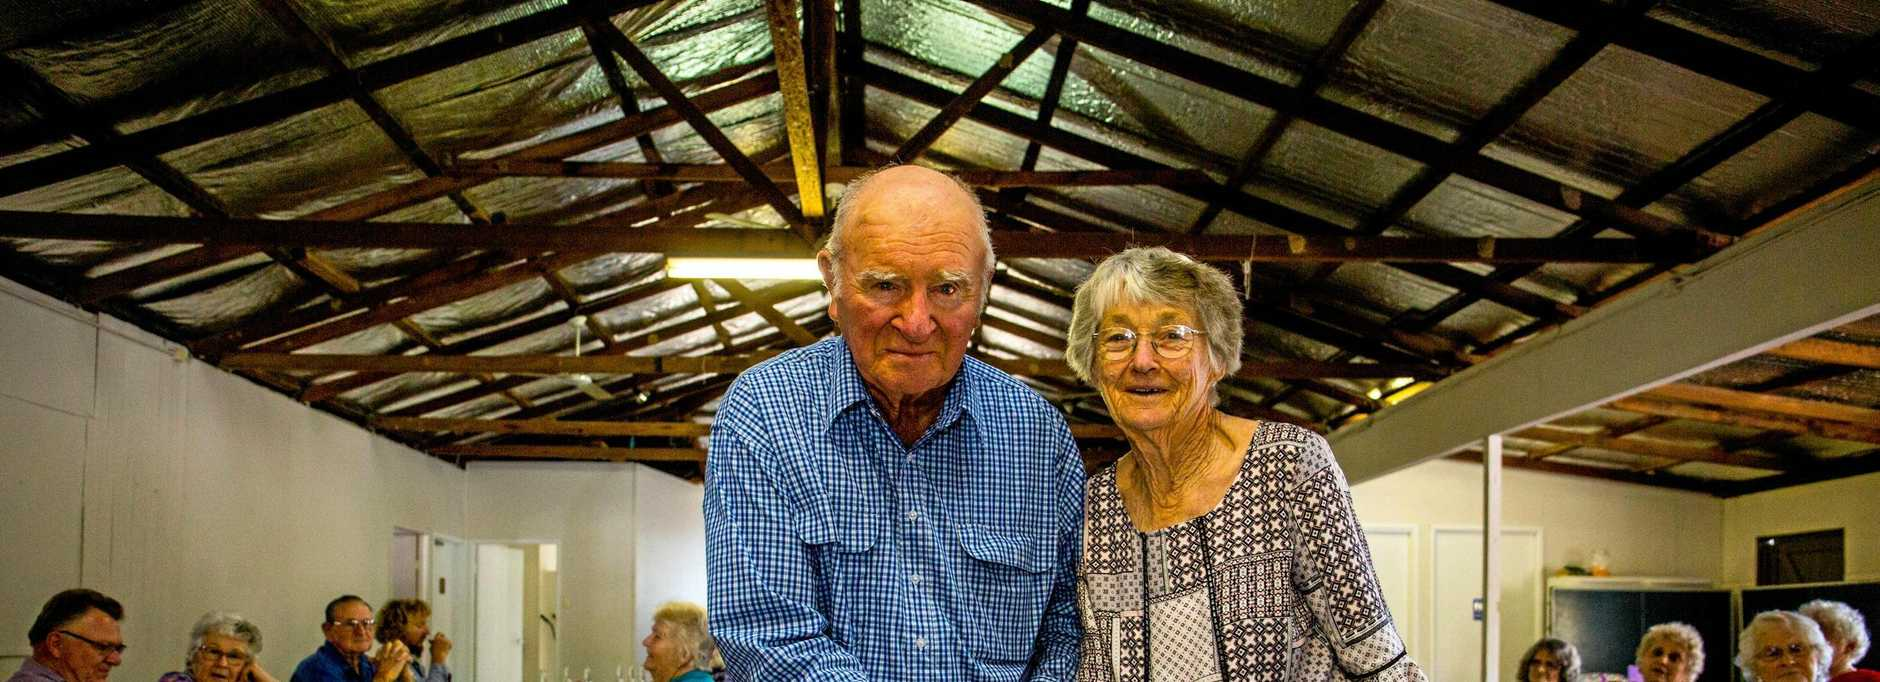 CHEERS: Bob and Shirley Blackburn celebrate their 60th wedding anniversary at Mothar Mountain Hall.